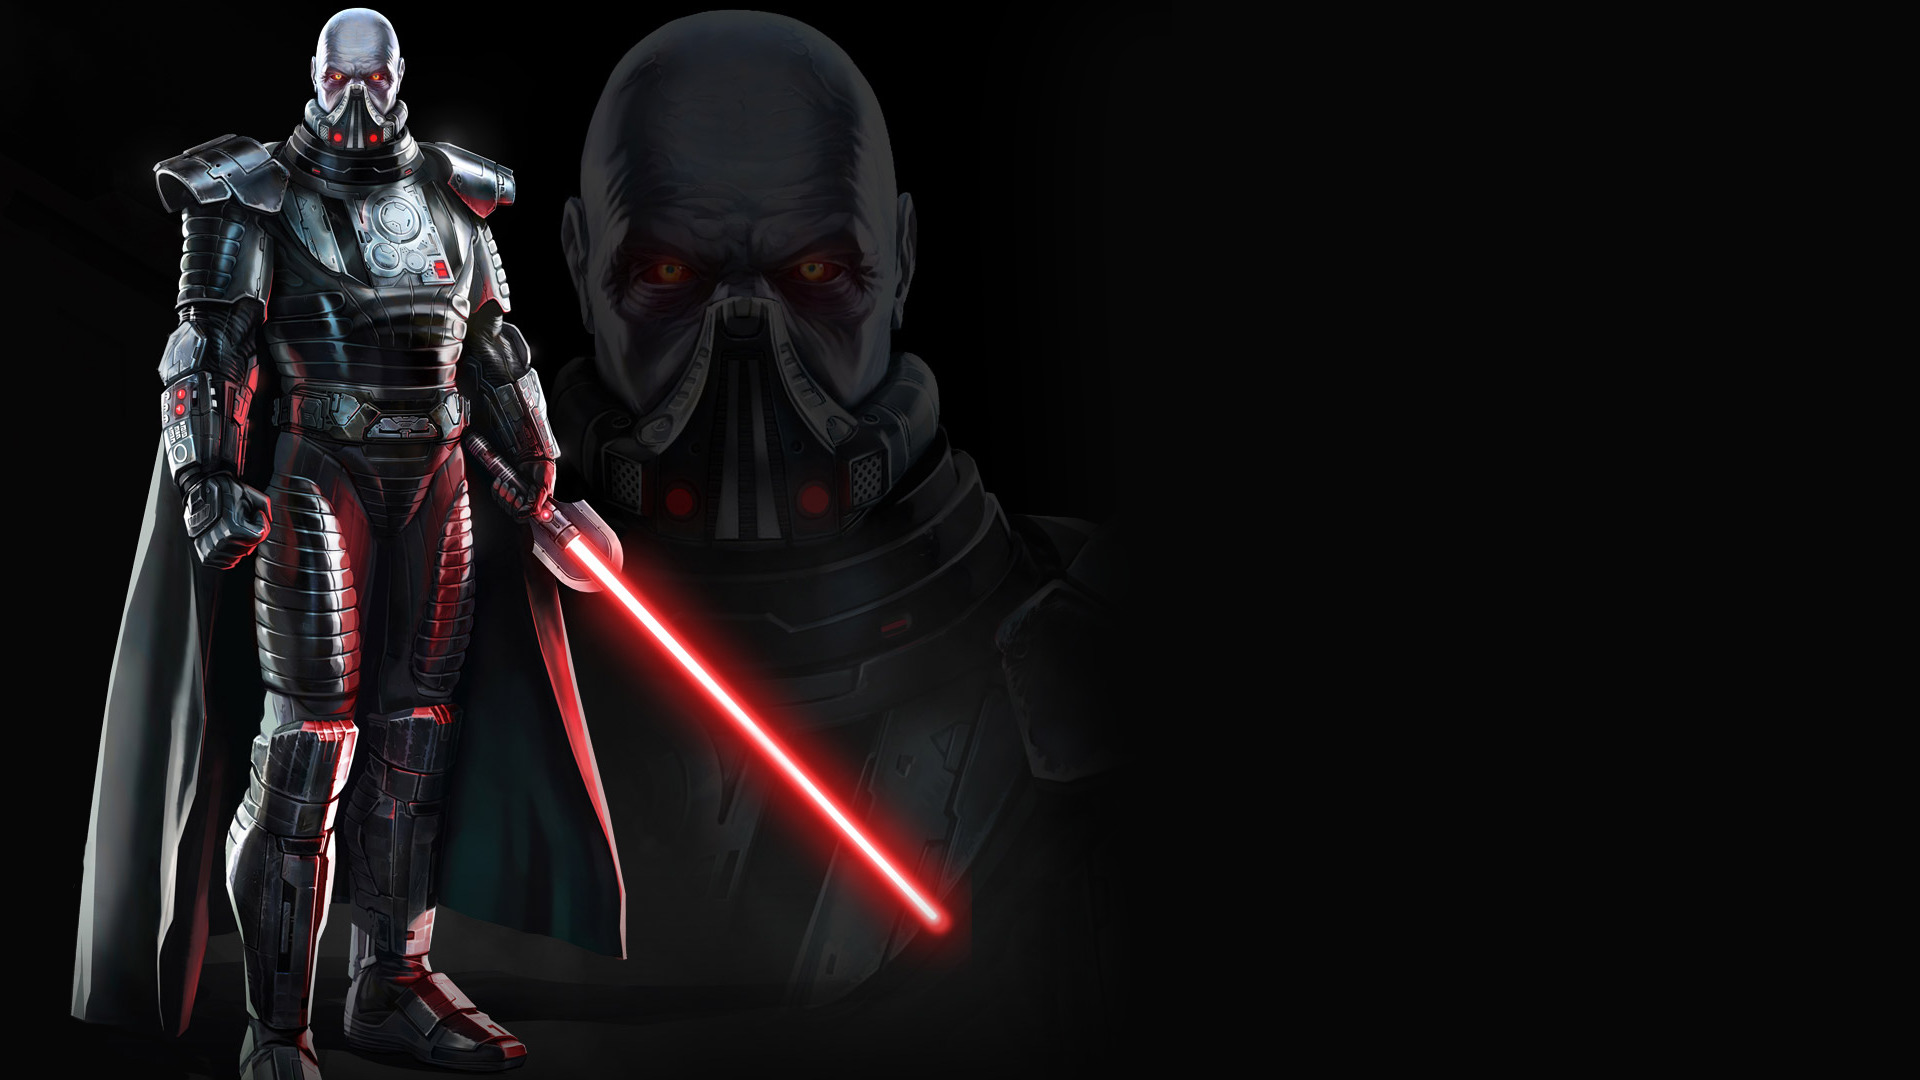 Darth Nihilus Wallpaper Posted By Zoey Cunningham